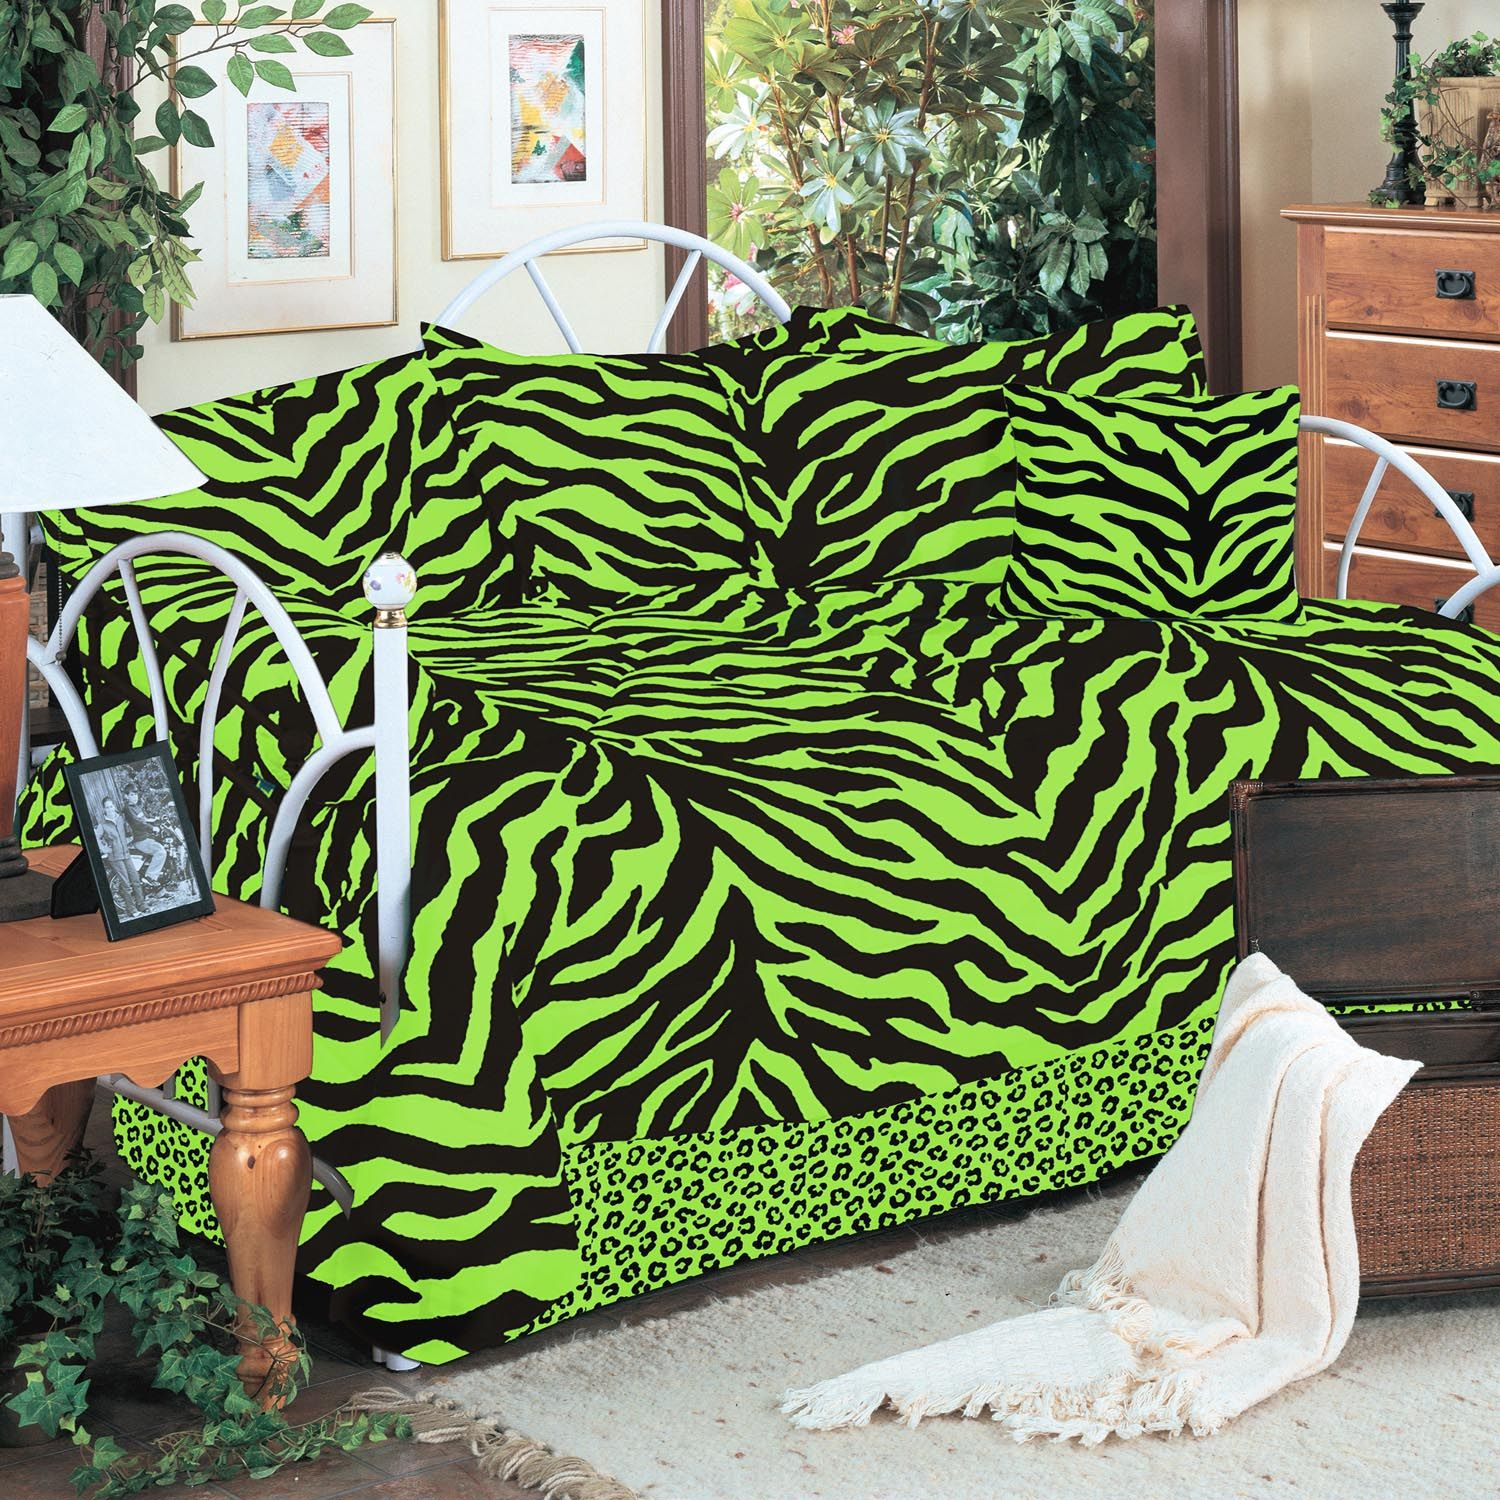 - Pin By Kimlor Mills On Zebra Lime Daybed Cover Sets, Daybed